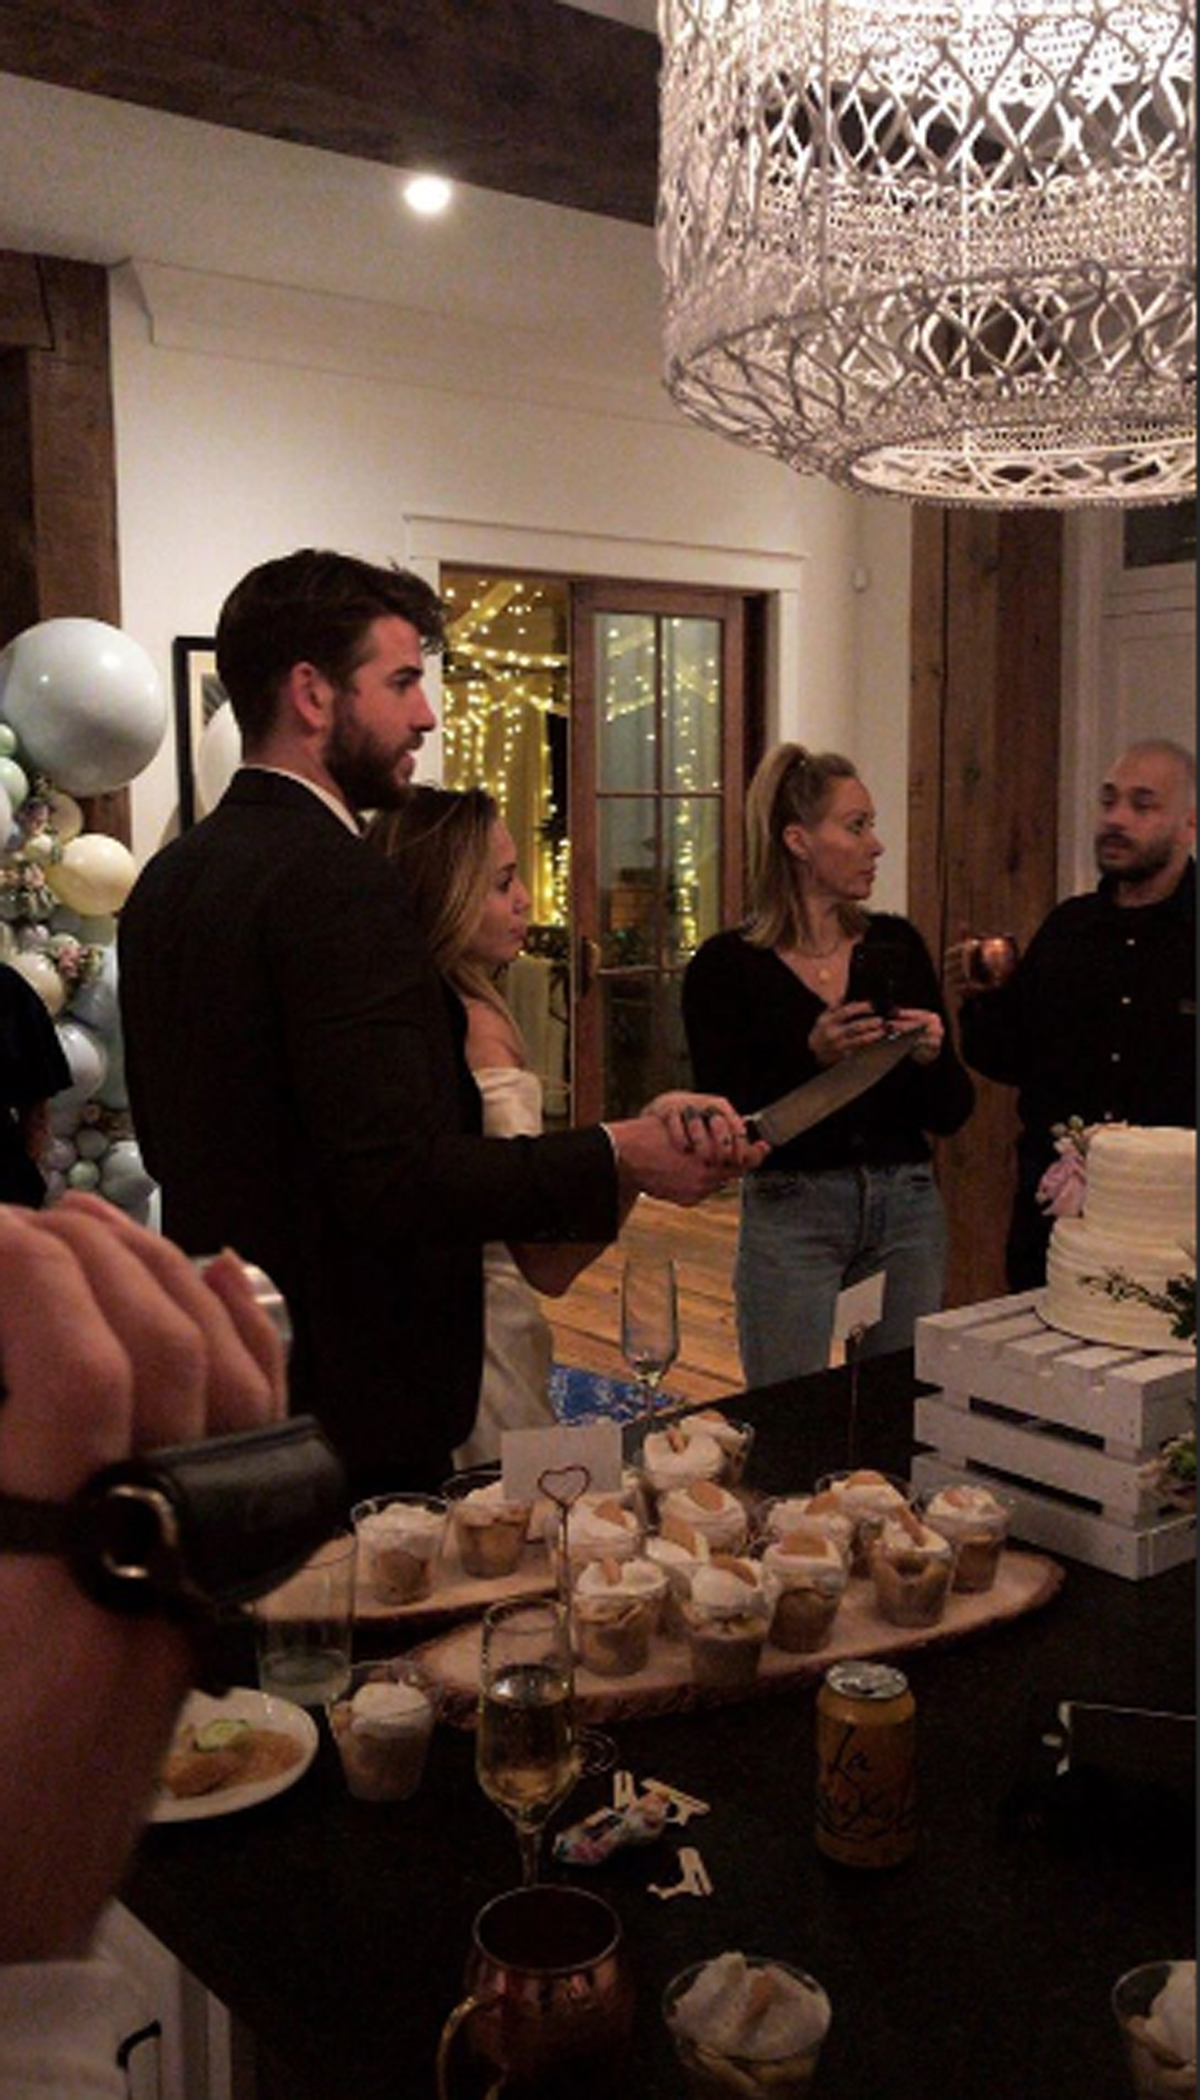 miley cyrus wedding liam hemsworth